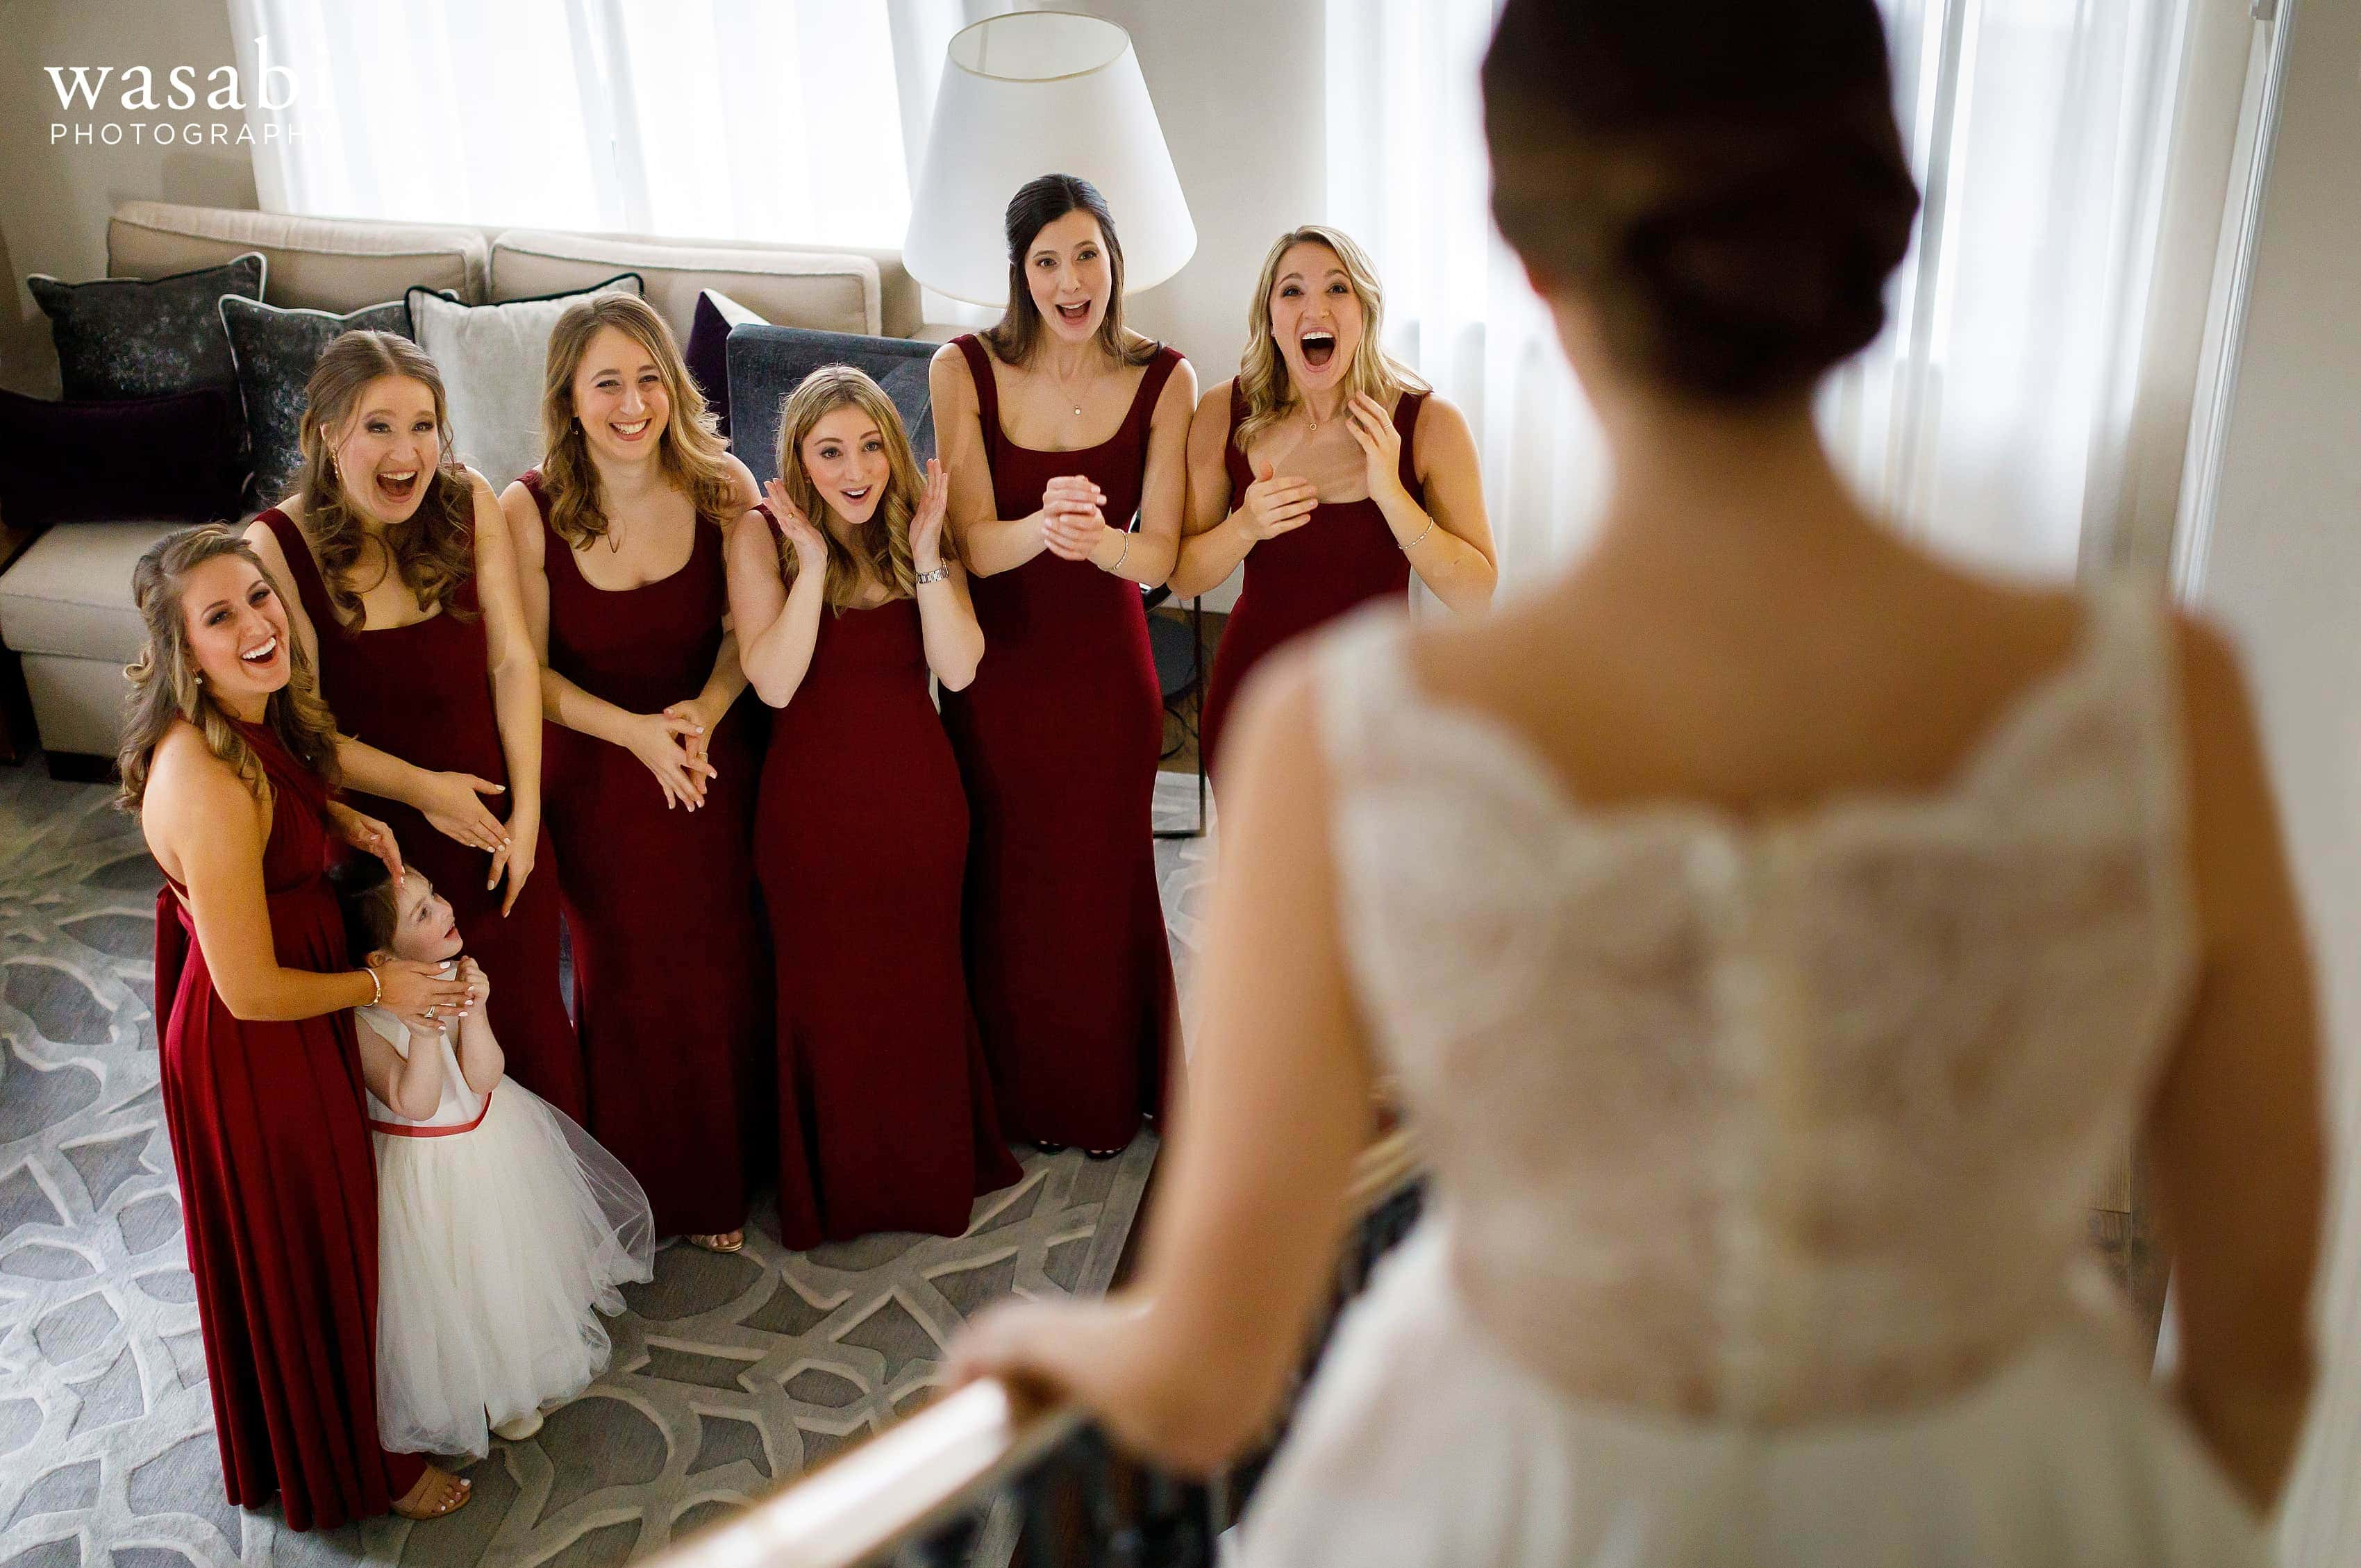 Bridesmaids react to seeing bride in wedding dress walking down the stairs in the presidential suite at InterContinental Chicago Magnificent Mile Hotel